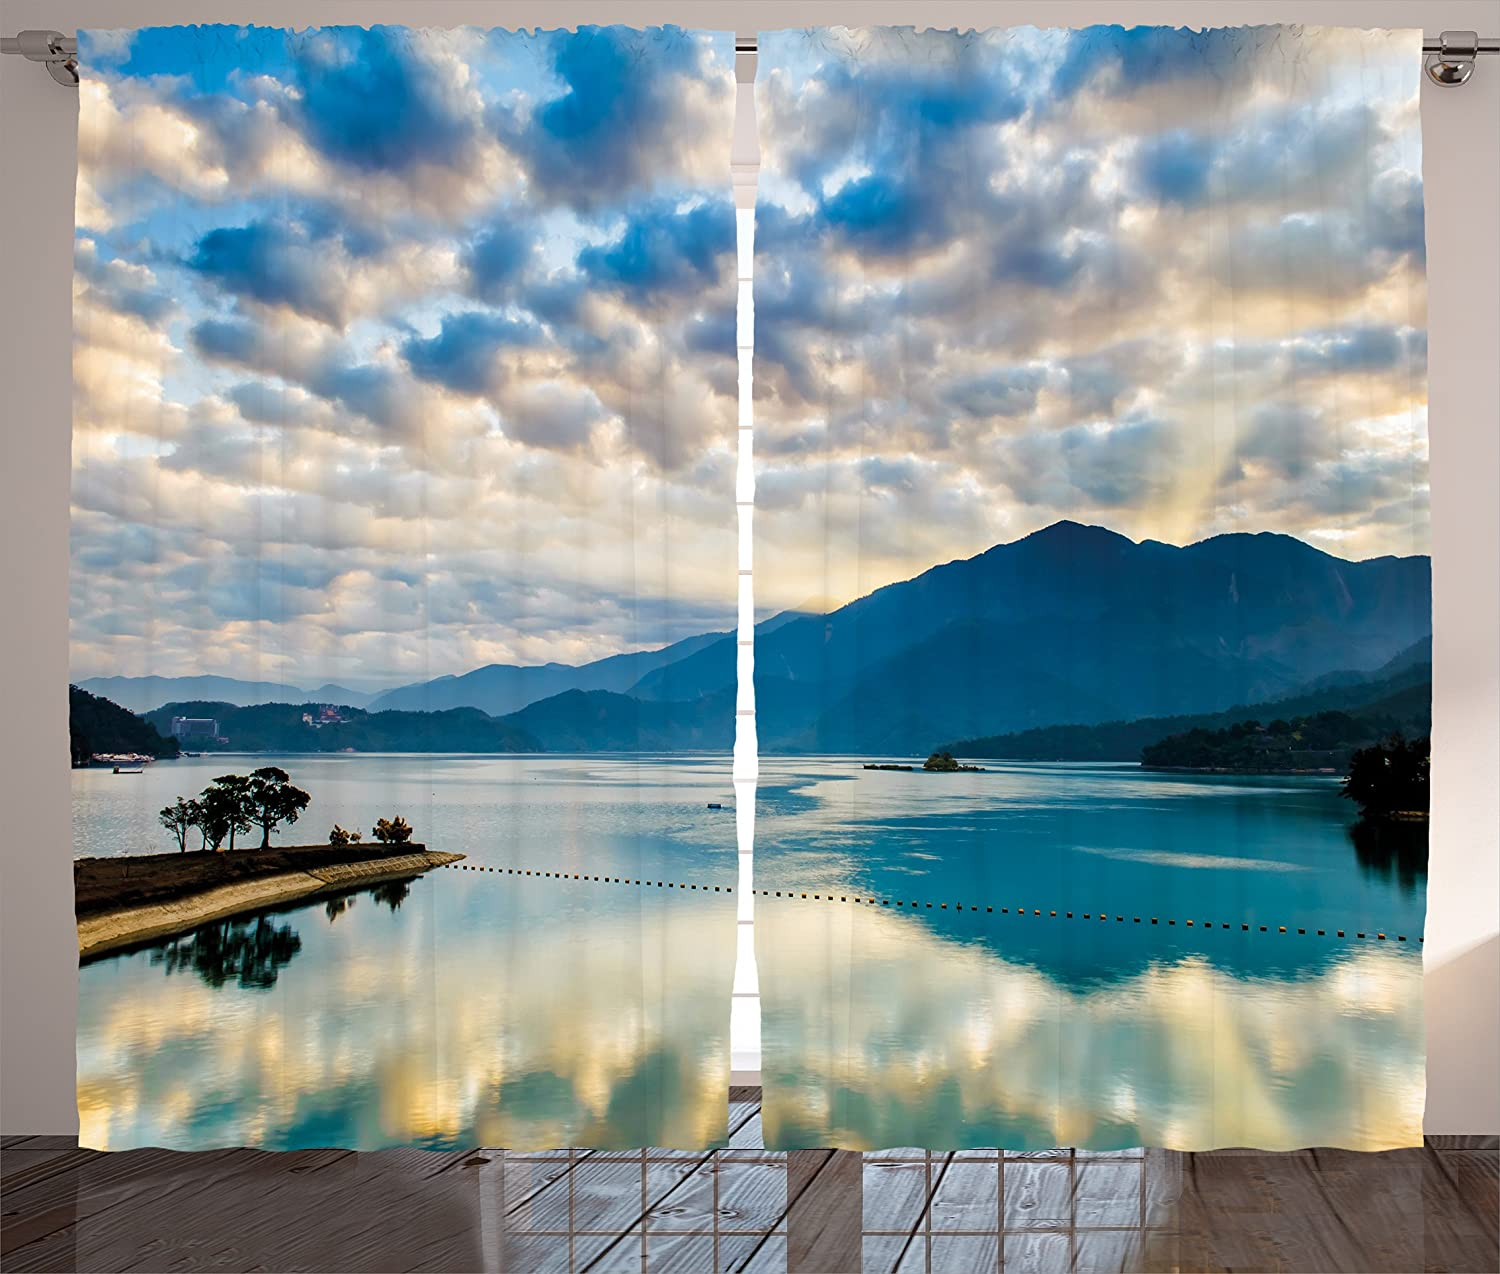 Ambesonne Tropical Curtains, Surreal Cloudy Sky Reflections on Sun Moon Lake Idyllic Nature Landscape, Living Room Bedroom Window Drapes 2 Panel Set, 108